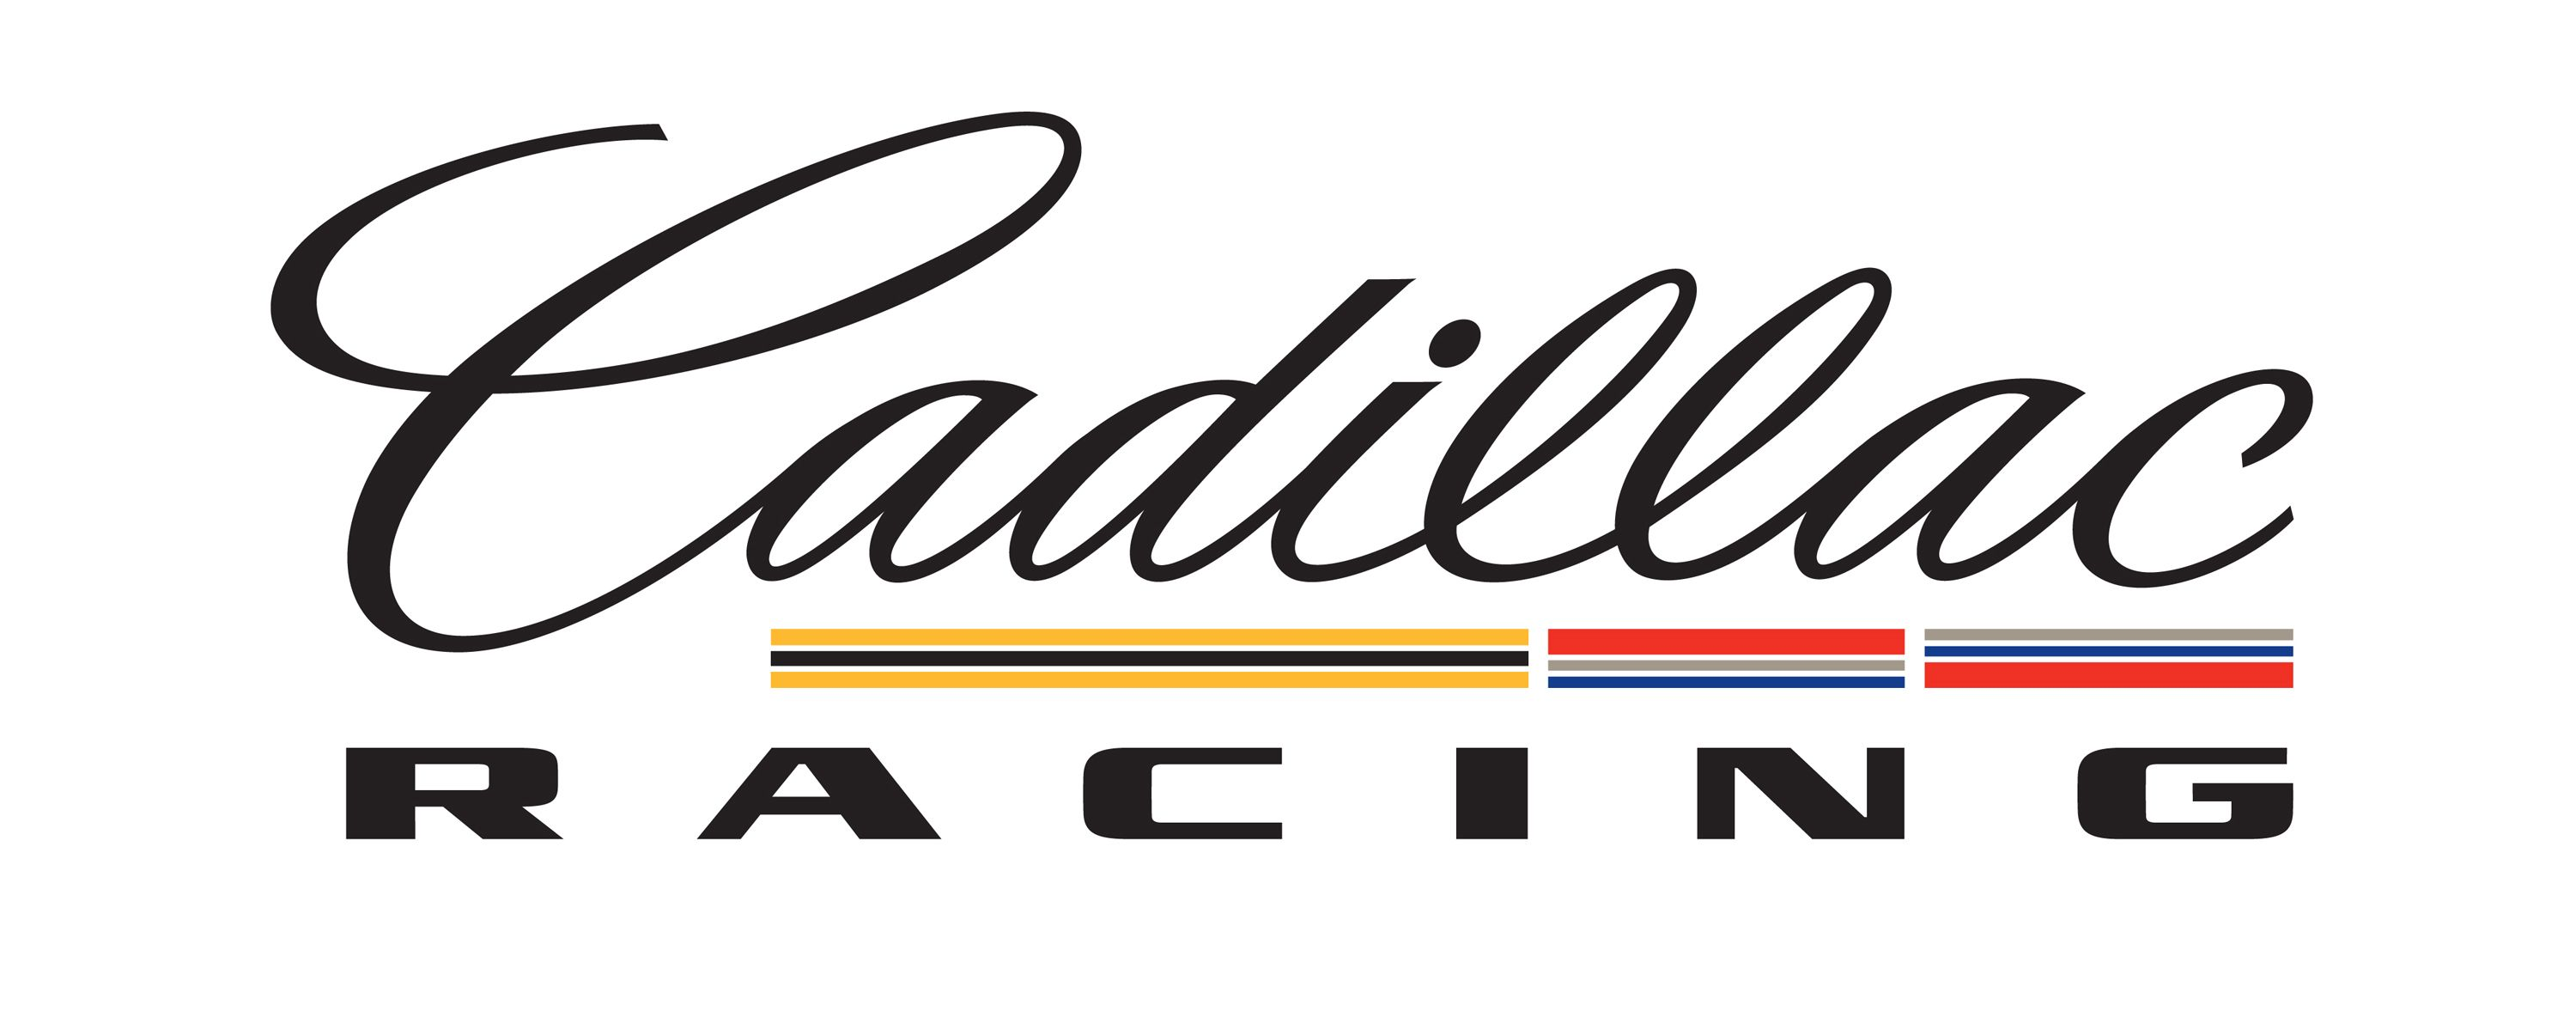 Cadillac Puts Its Engines Through the Paces on the Racetrack